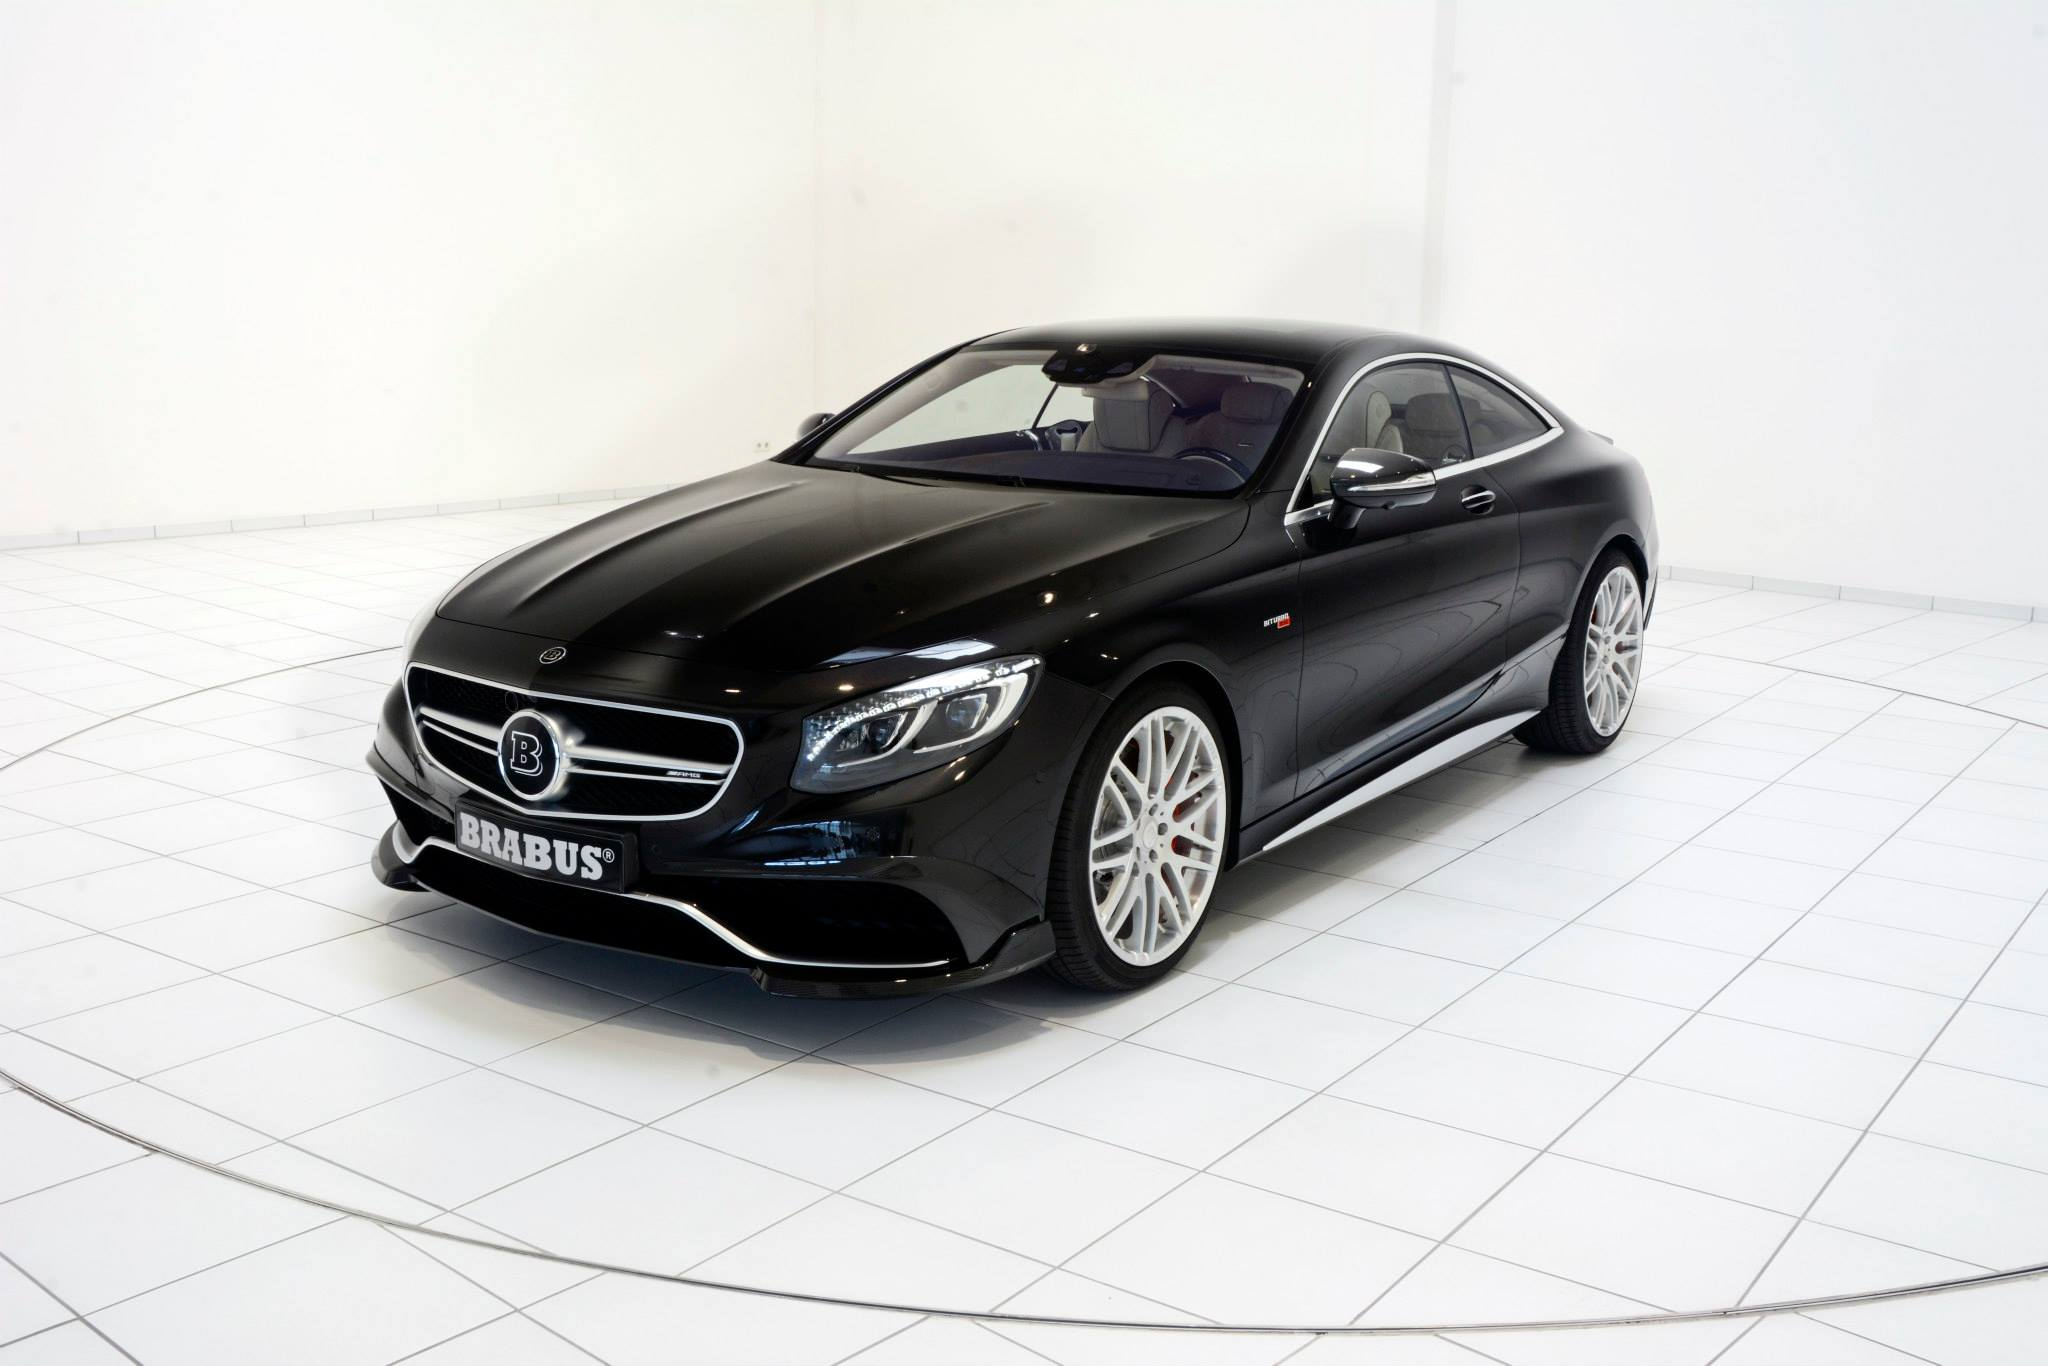 brabus 850 for s63 amg coupe brings black paint and cream. Black Bedroom Furniture Sets. Home Design Ideas